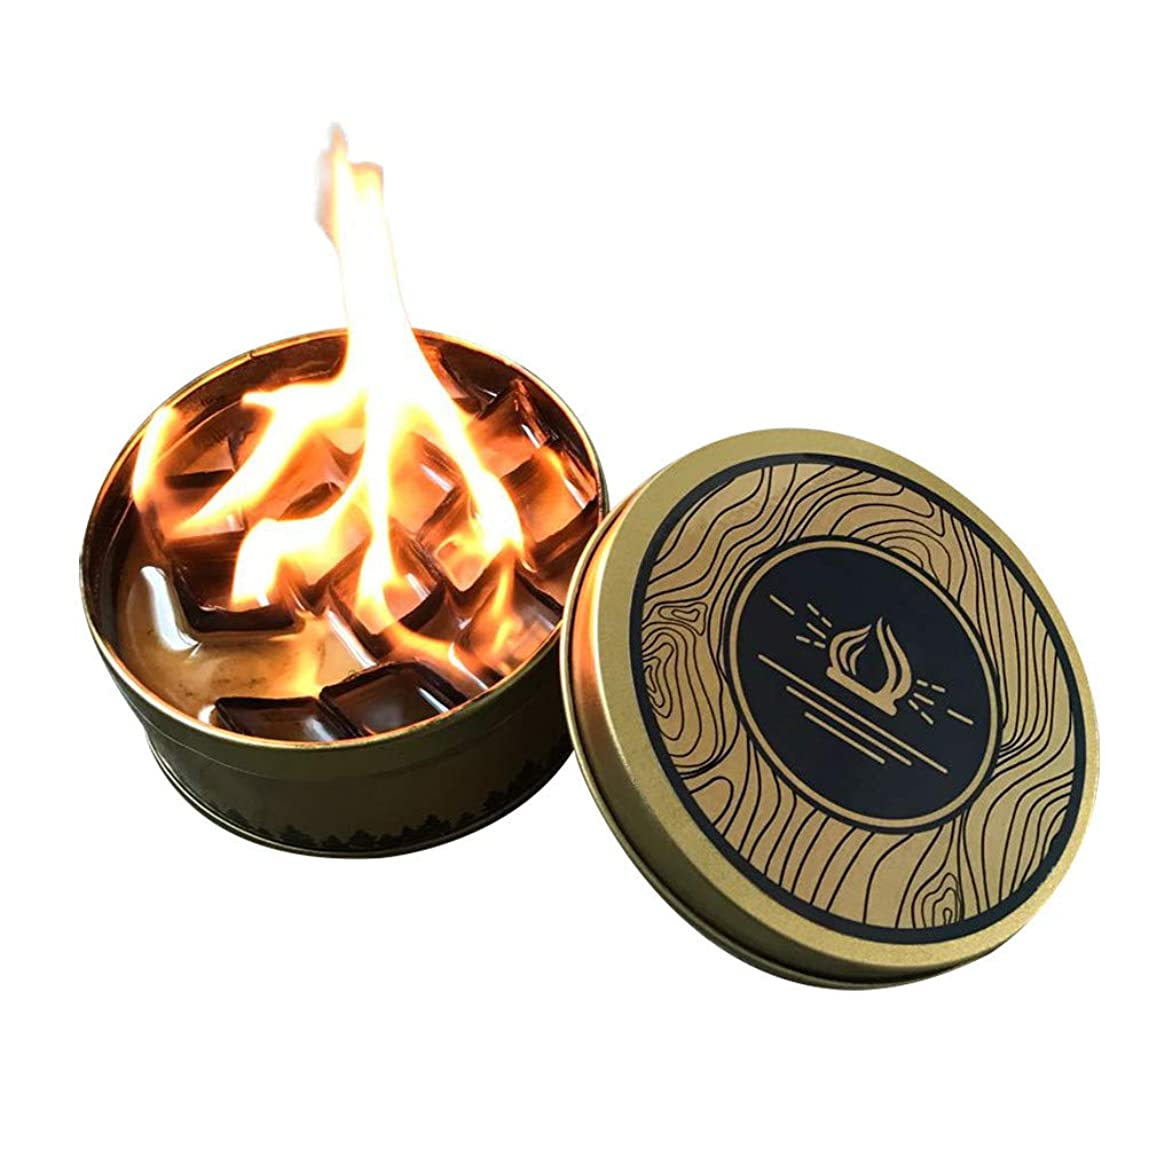 Portable and Reusable Campfire Outdoor Lighting Campfire Heating